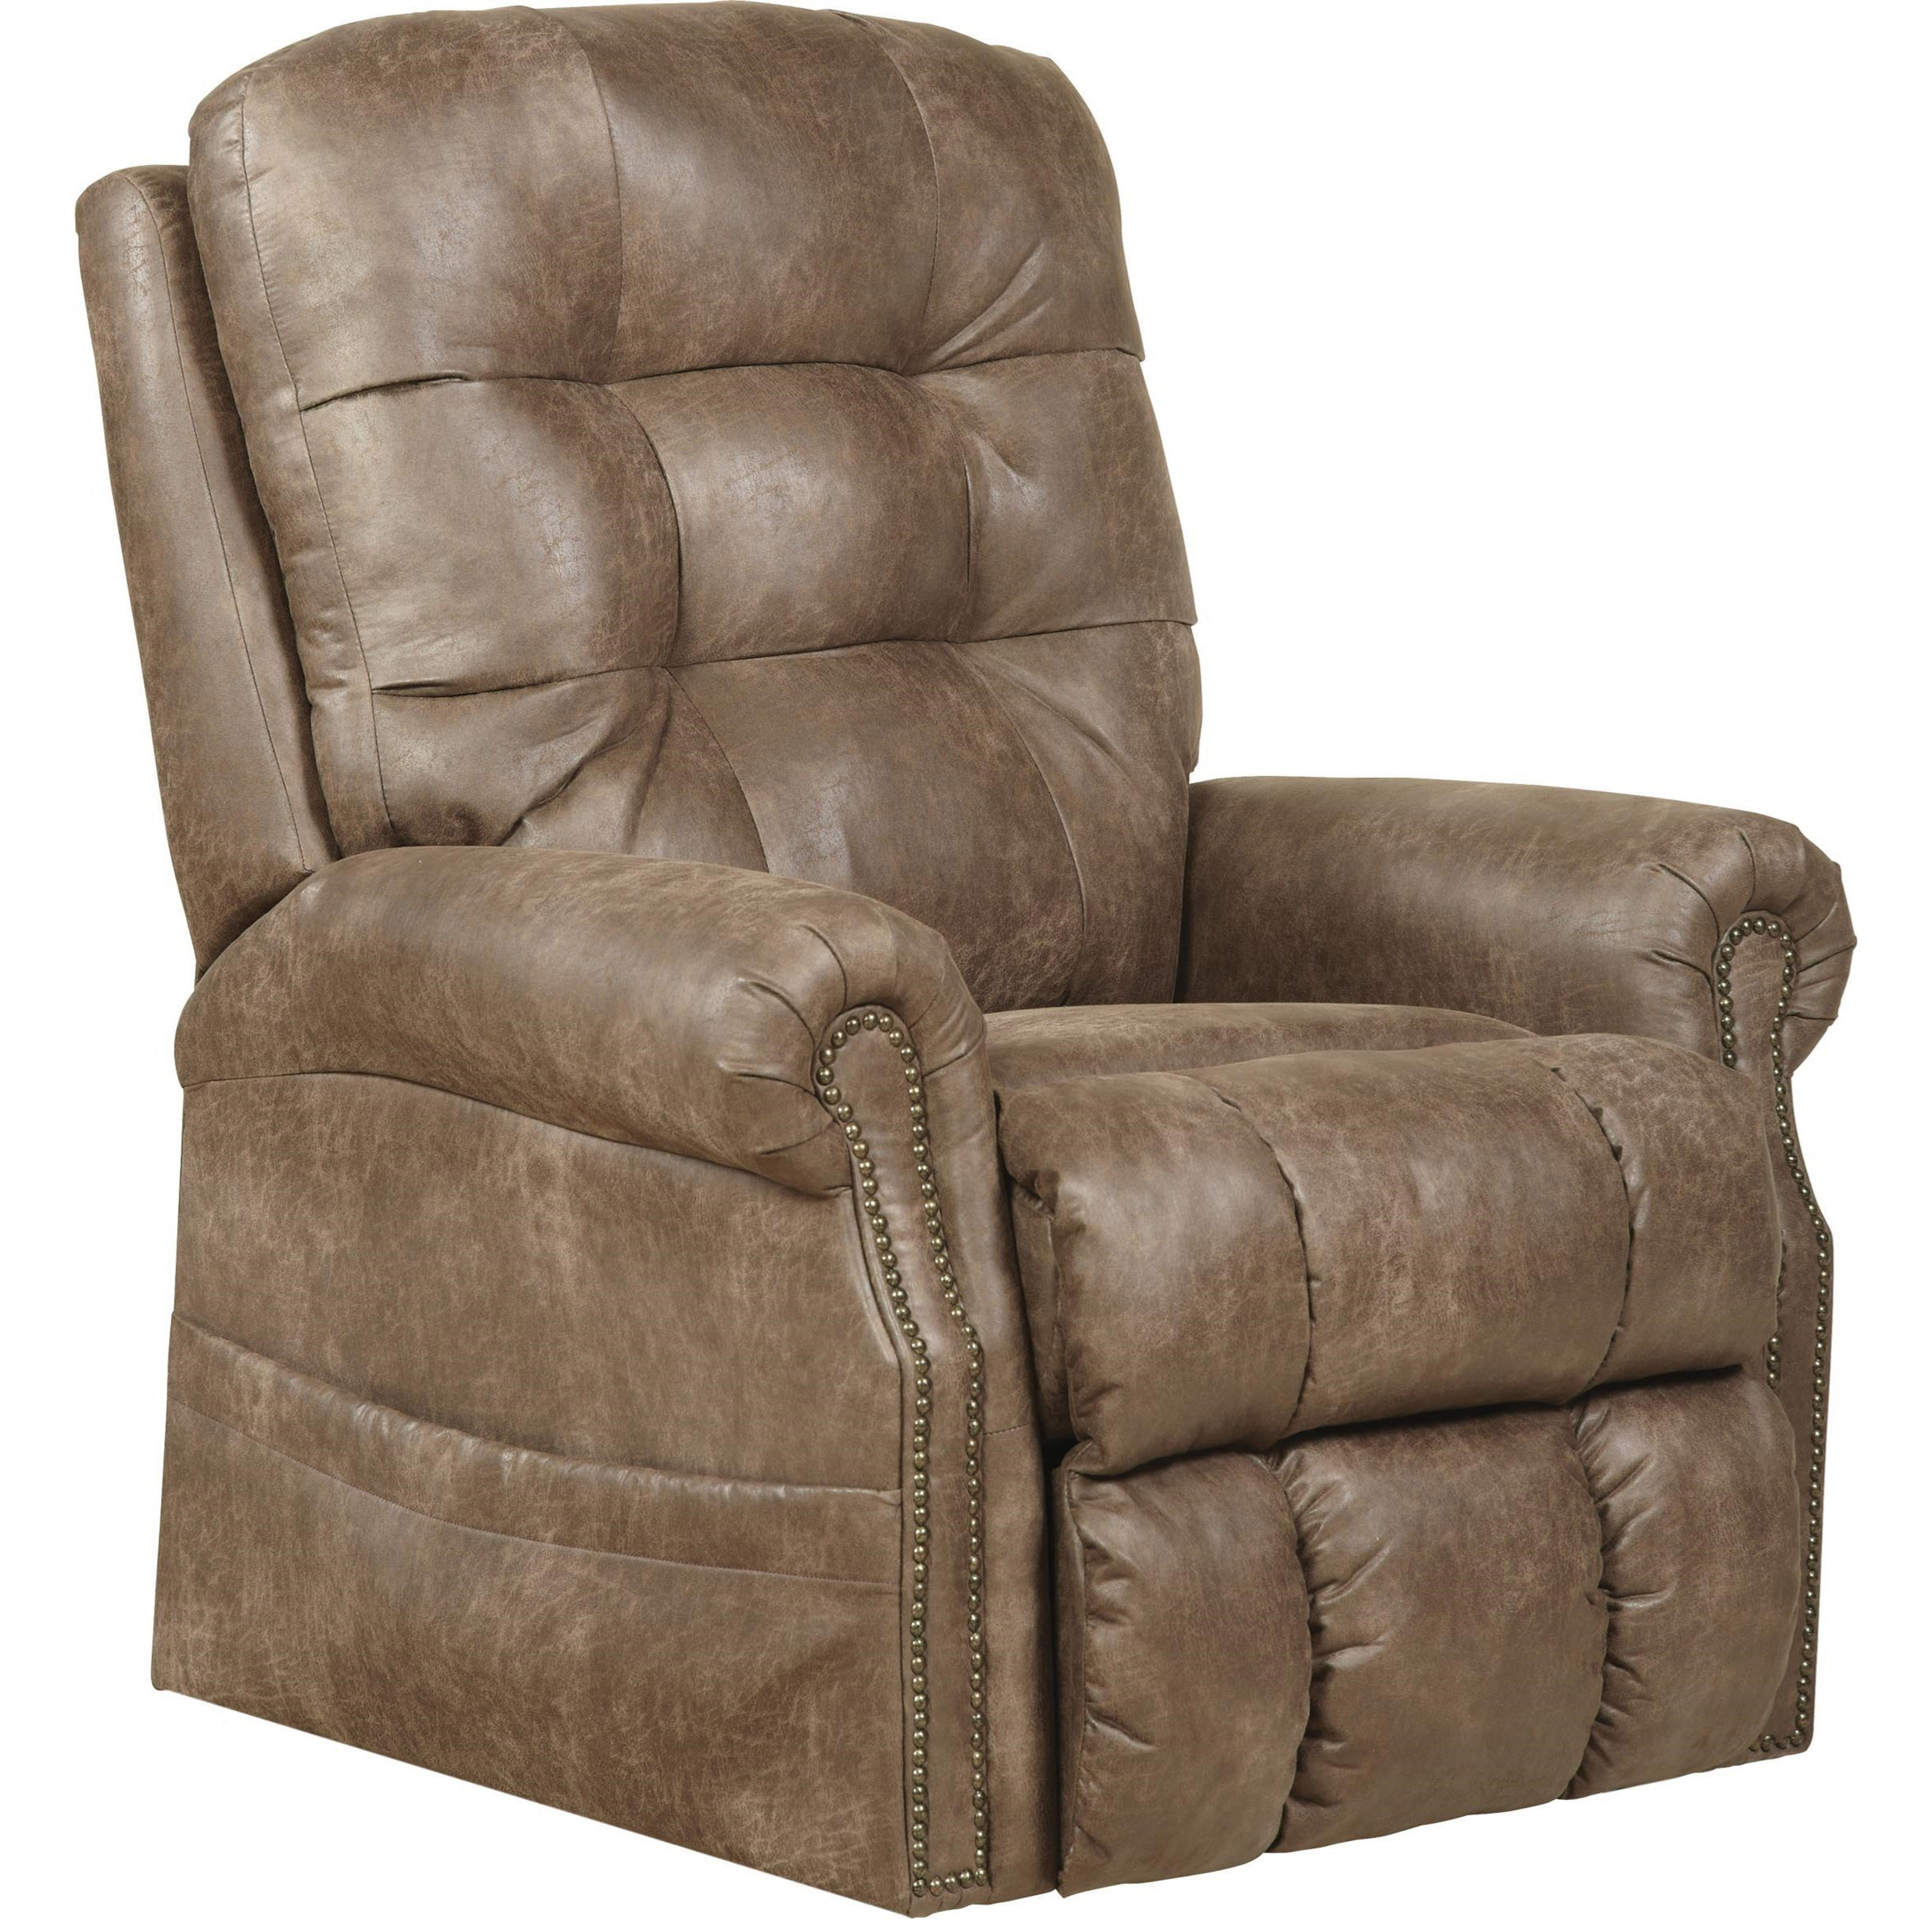 Genial Catnapper Motion Chairs And Recliners Ramsey Lift Chair With Heat And  Massage   Item Number: